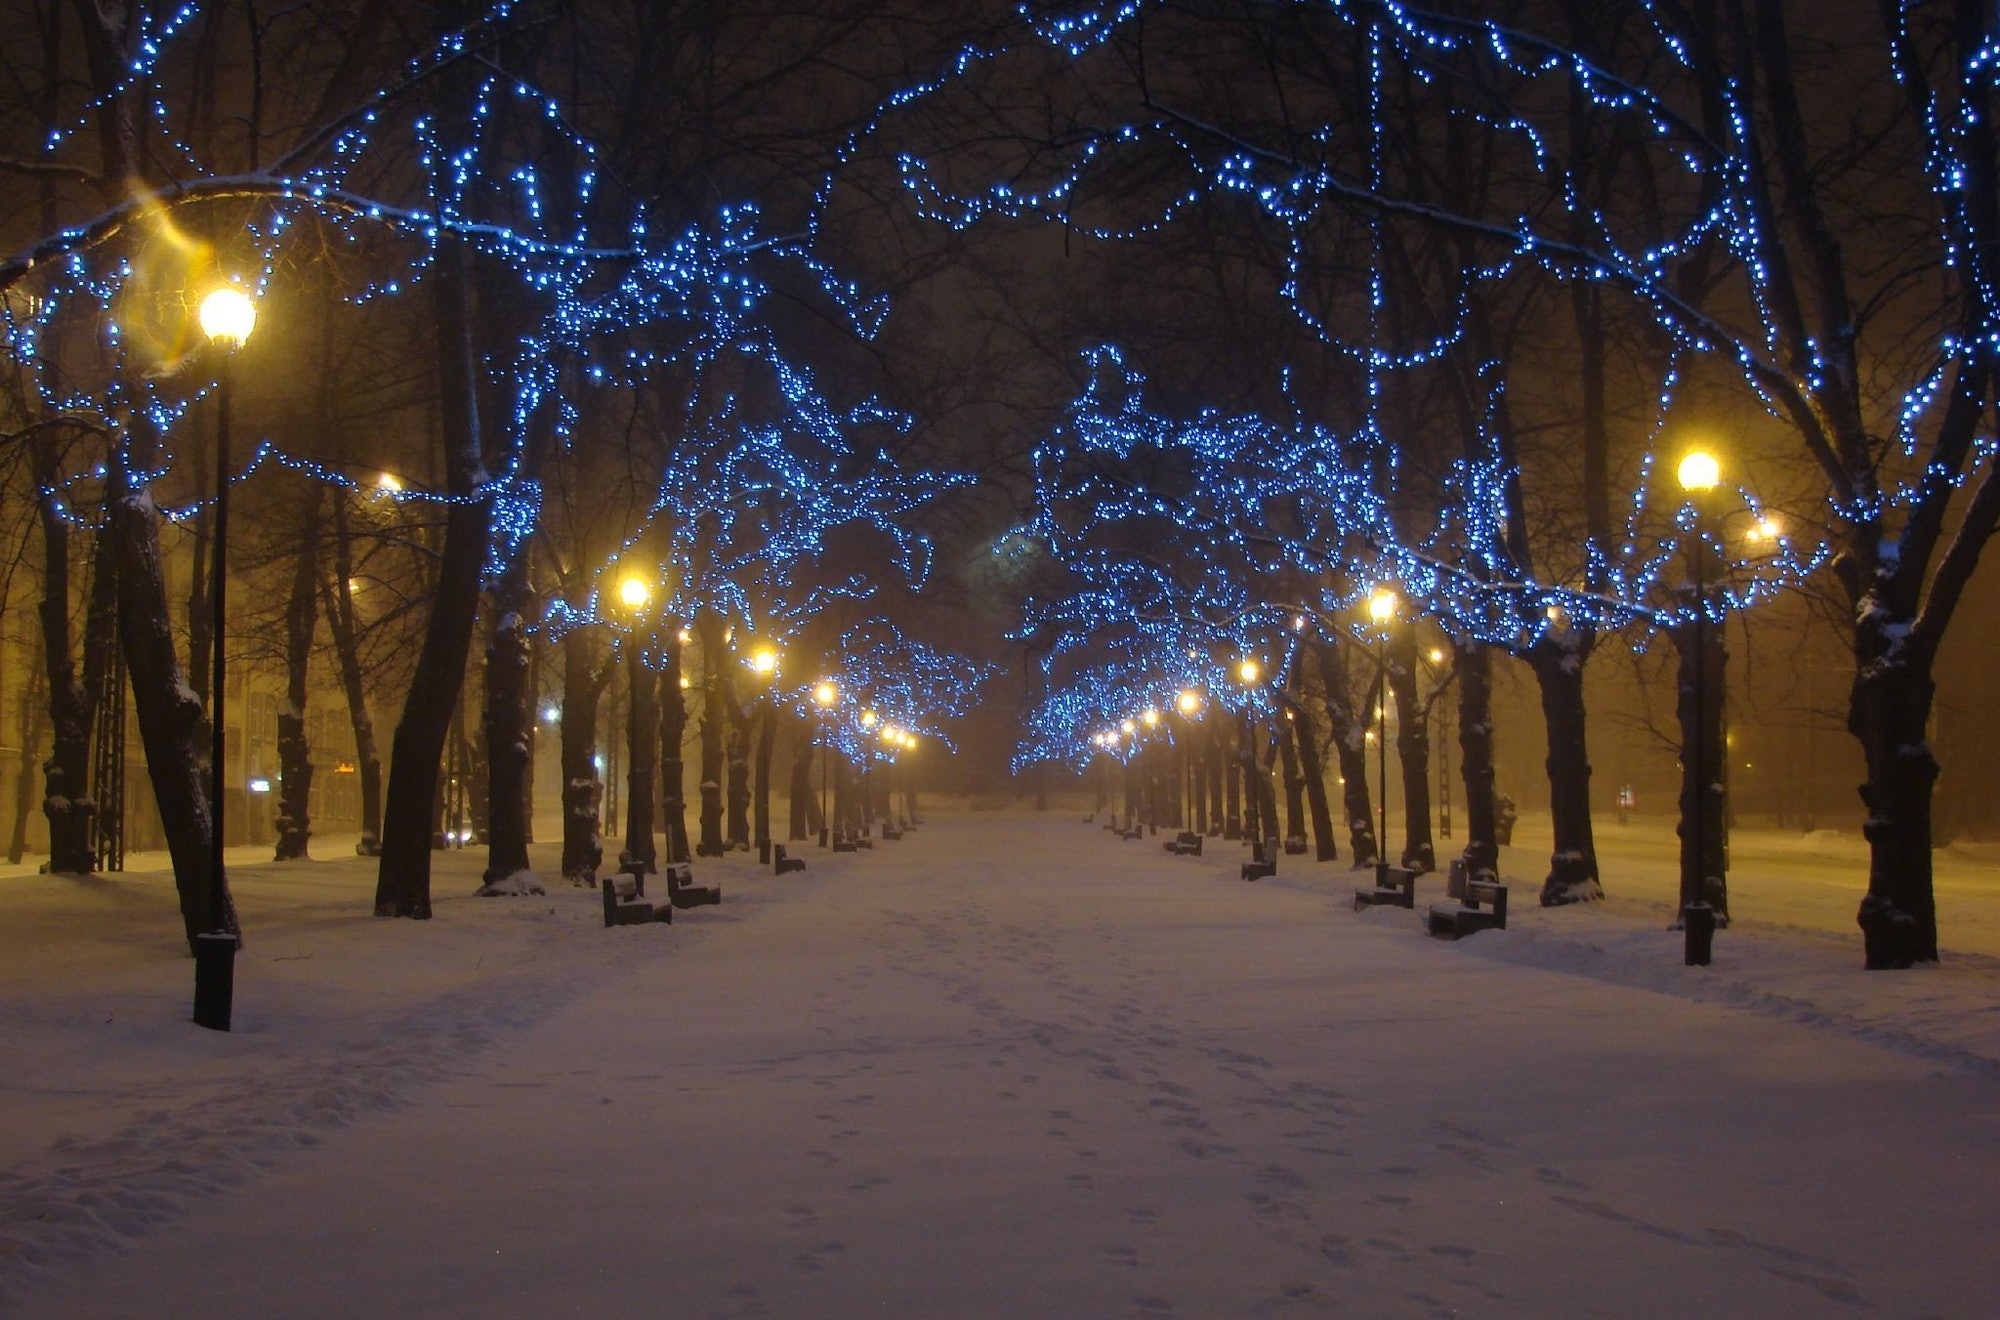 Night Alley - winter in blue